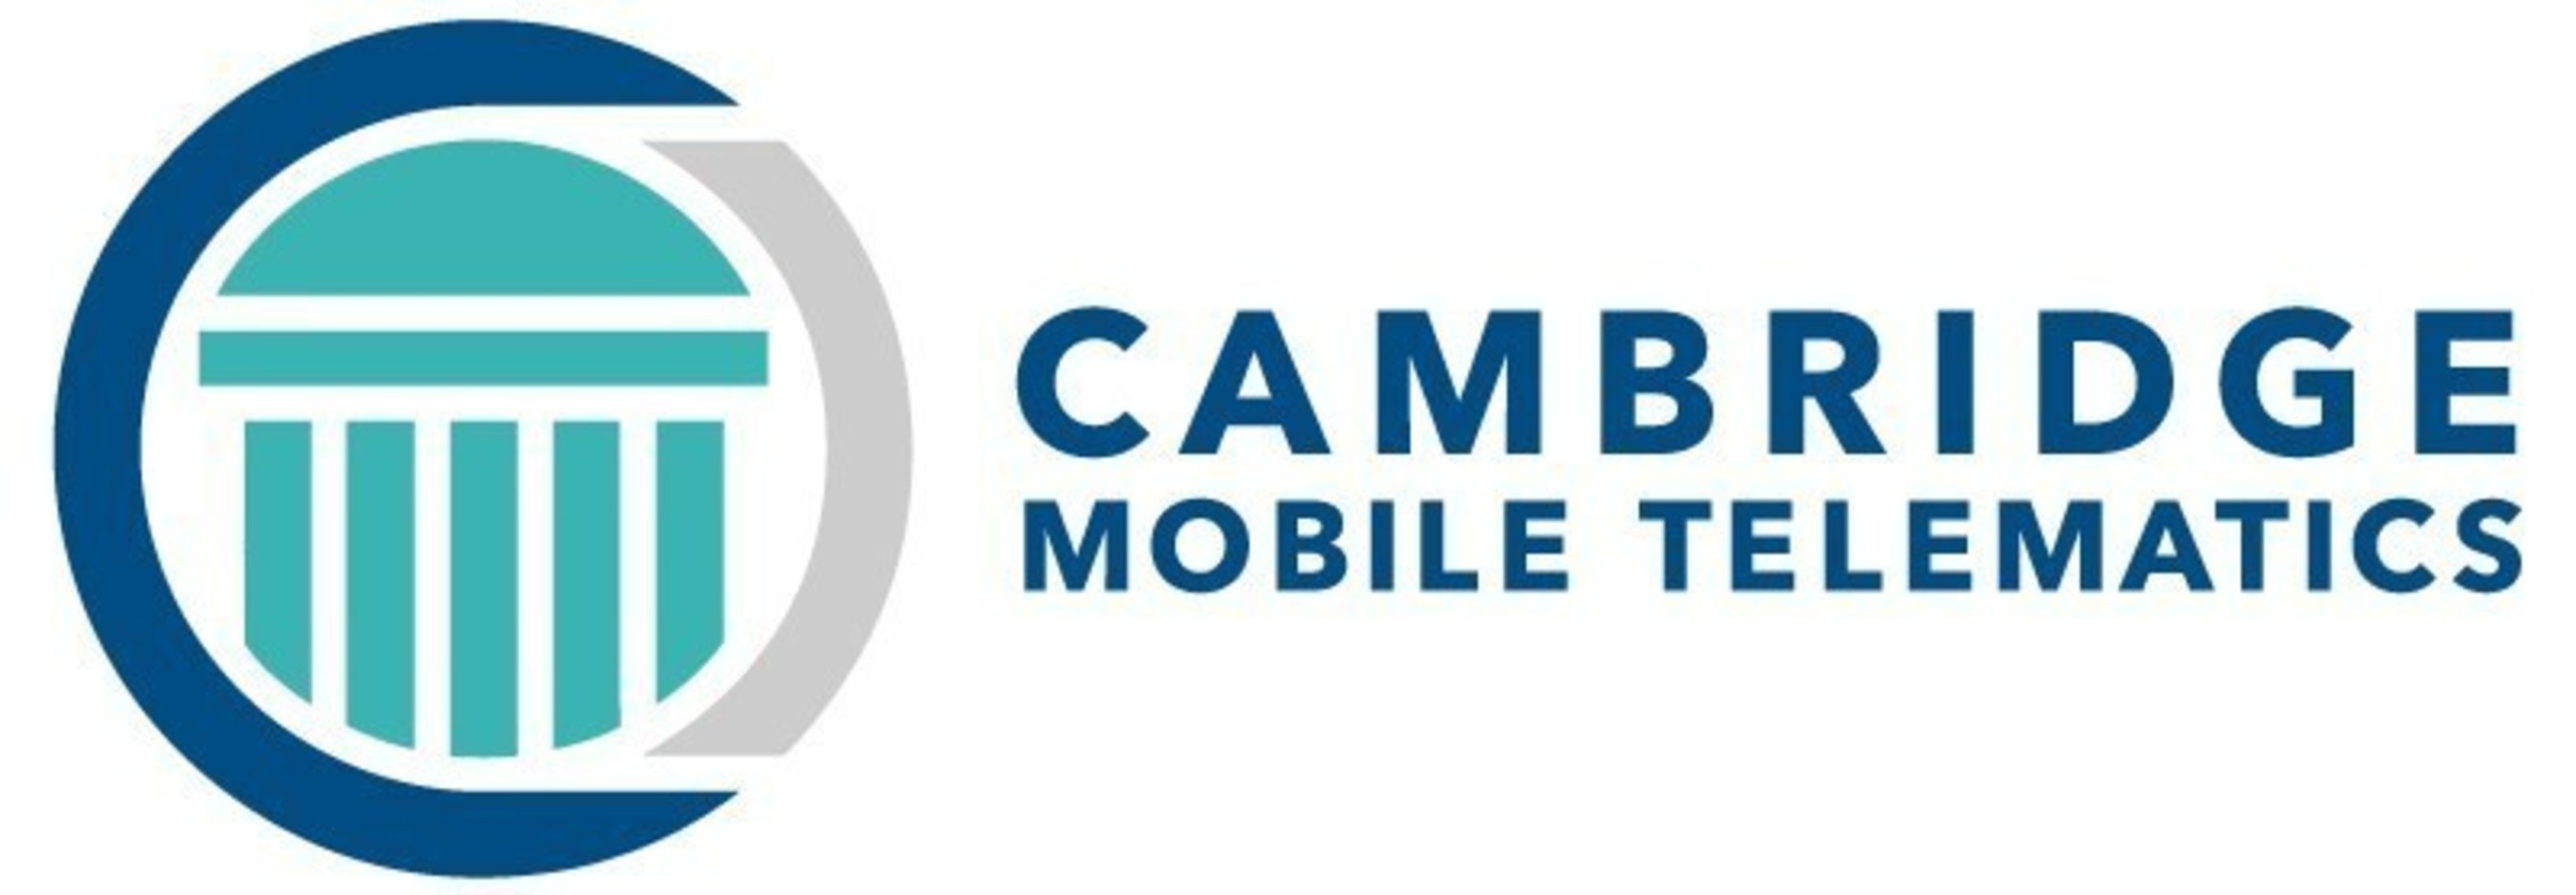 Cambridge Mobile Telematics Named Best Among Global and North American Telematics Service Providers of Smartphone Apps